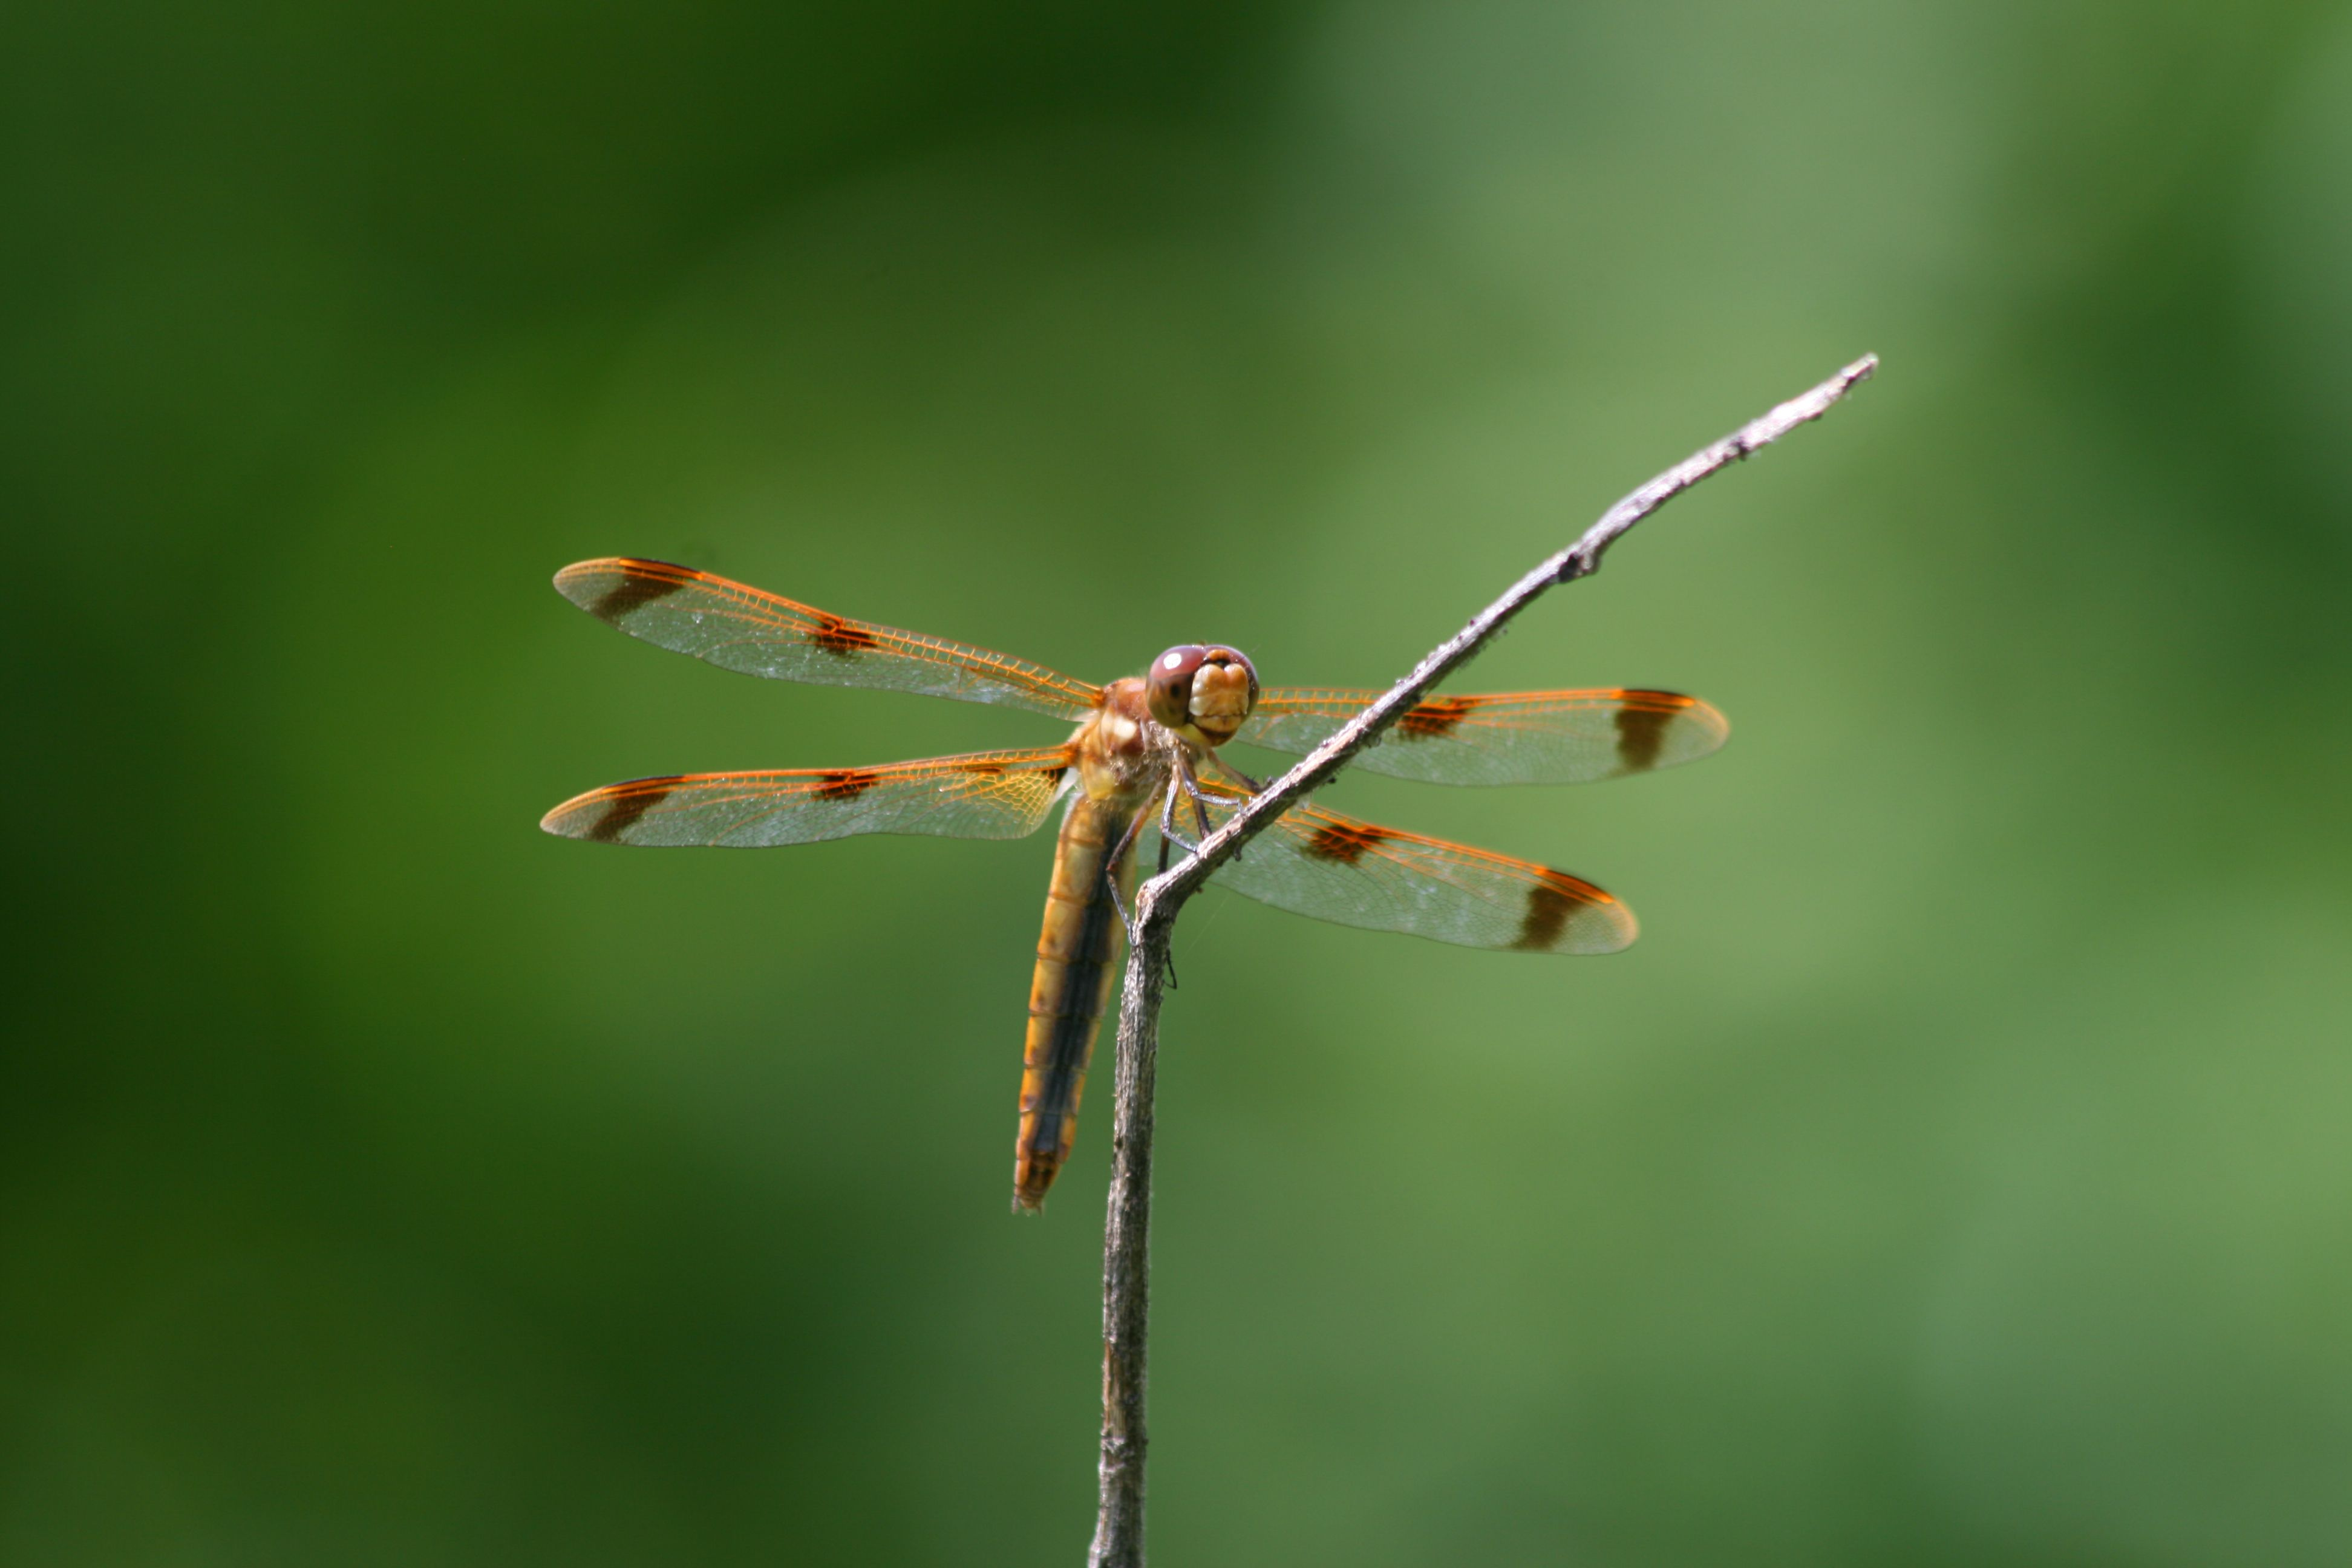 A painted skimmer sits in front of a green background.